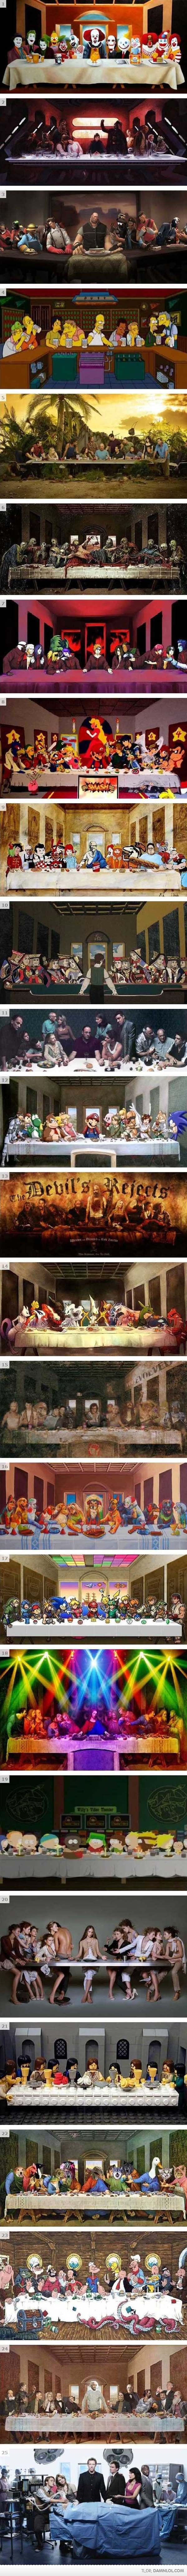 the last supper parodies funny saying gt